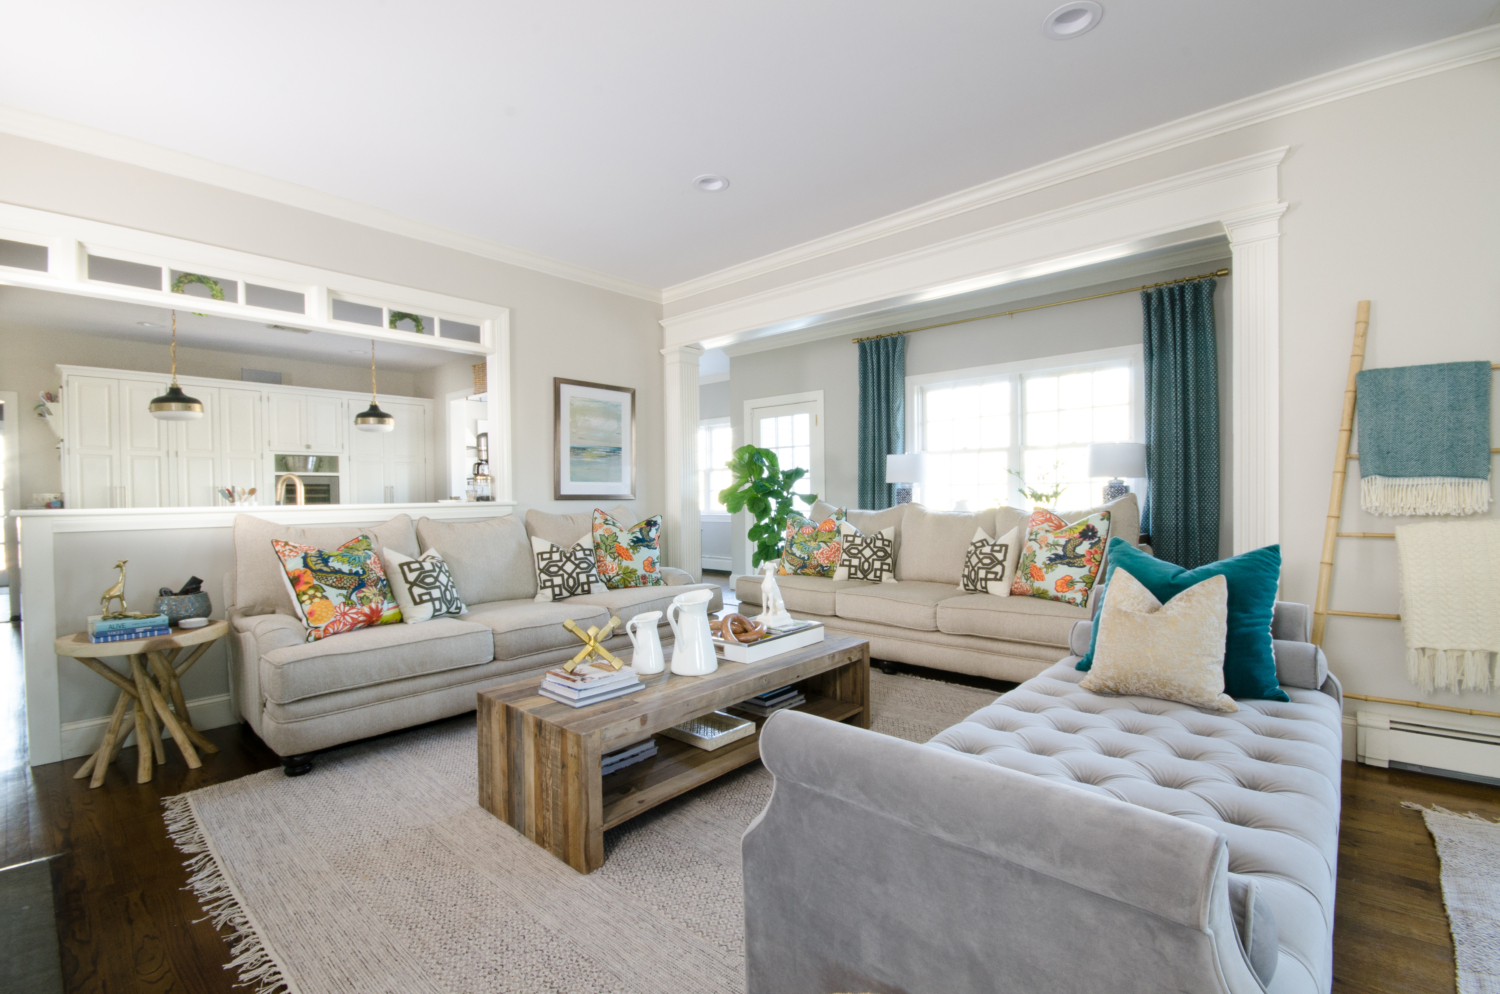 A stylish family room that's both chic and family-friendly featuring neutral furniture and thoughtful pops of color. Features an oversized English roll arm sofa, a tufted daybed / backless sofa that divides the room into two seating areas, and reclaimed wood accent tables to balance traditional and rustic.